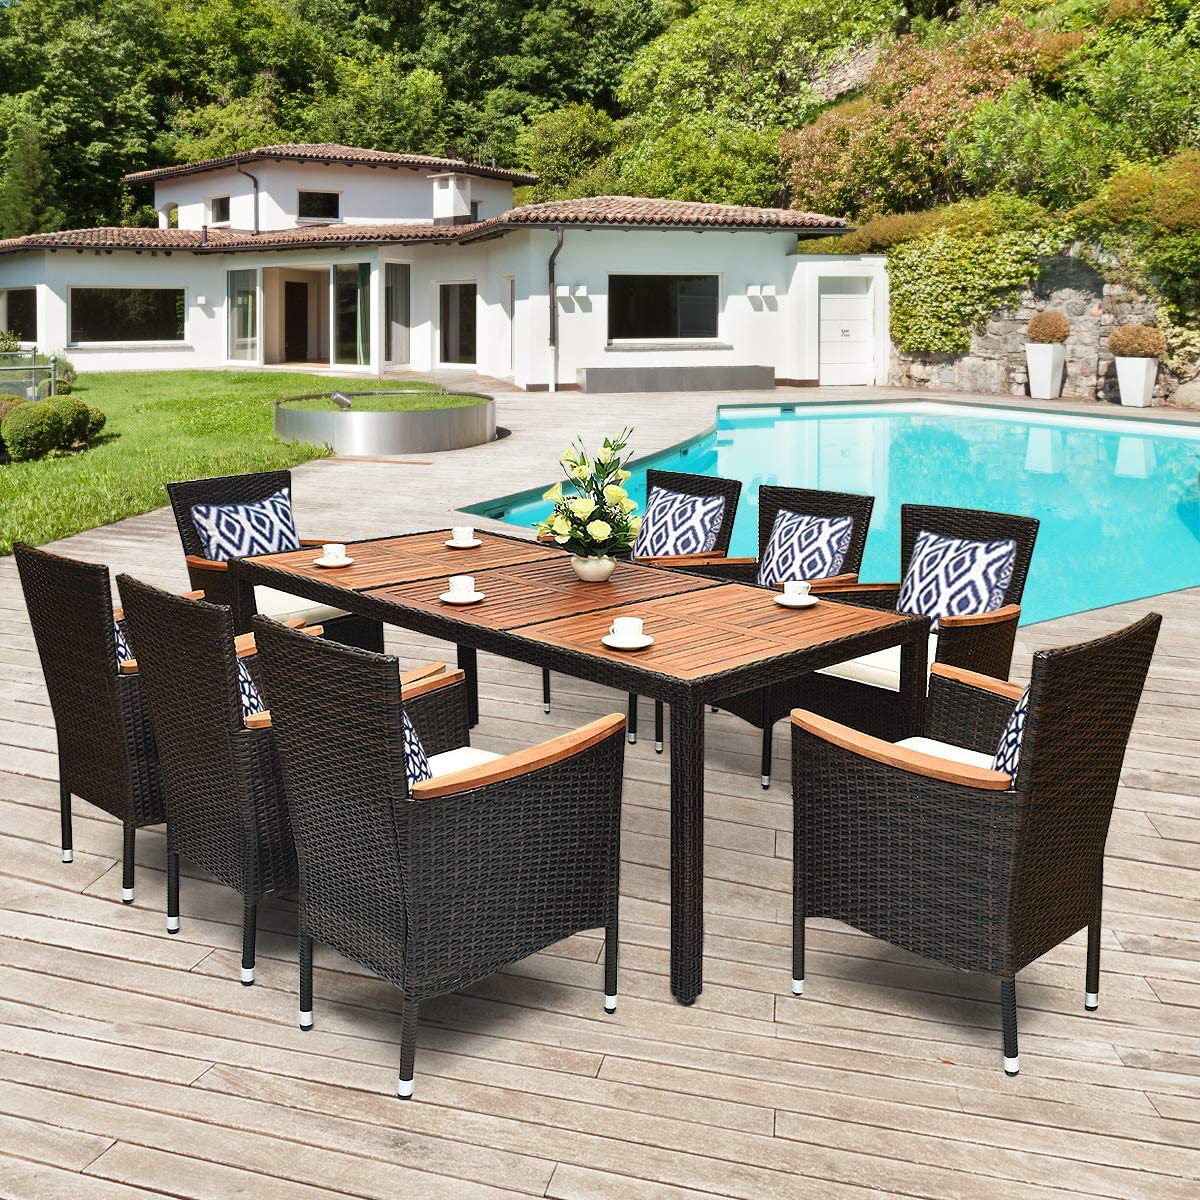 10 Best Patio Furniture Under $1000